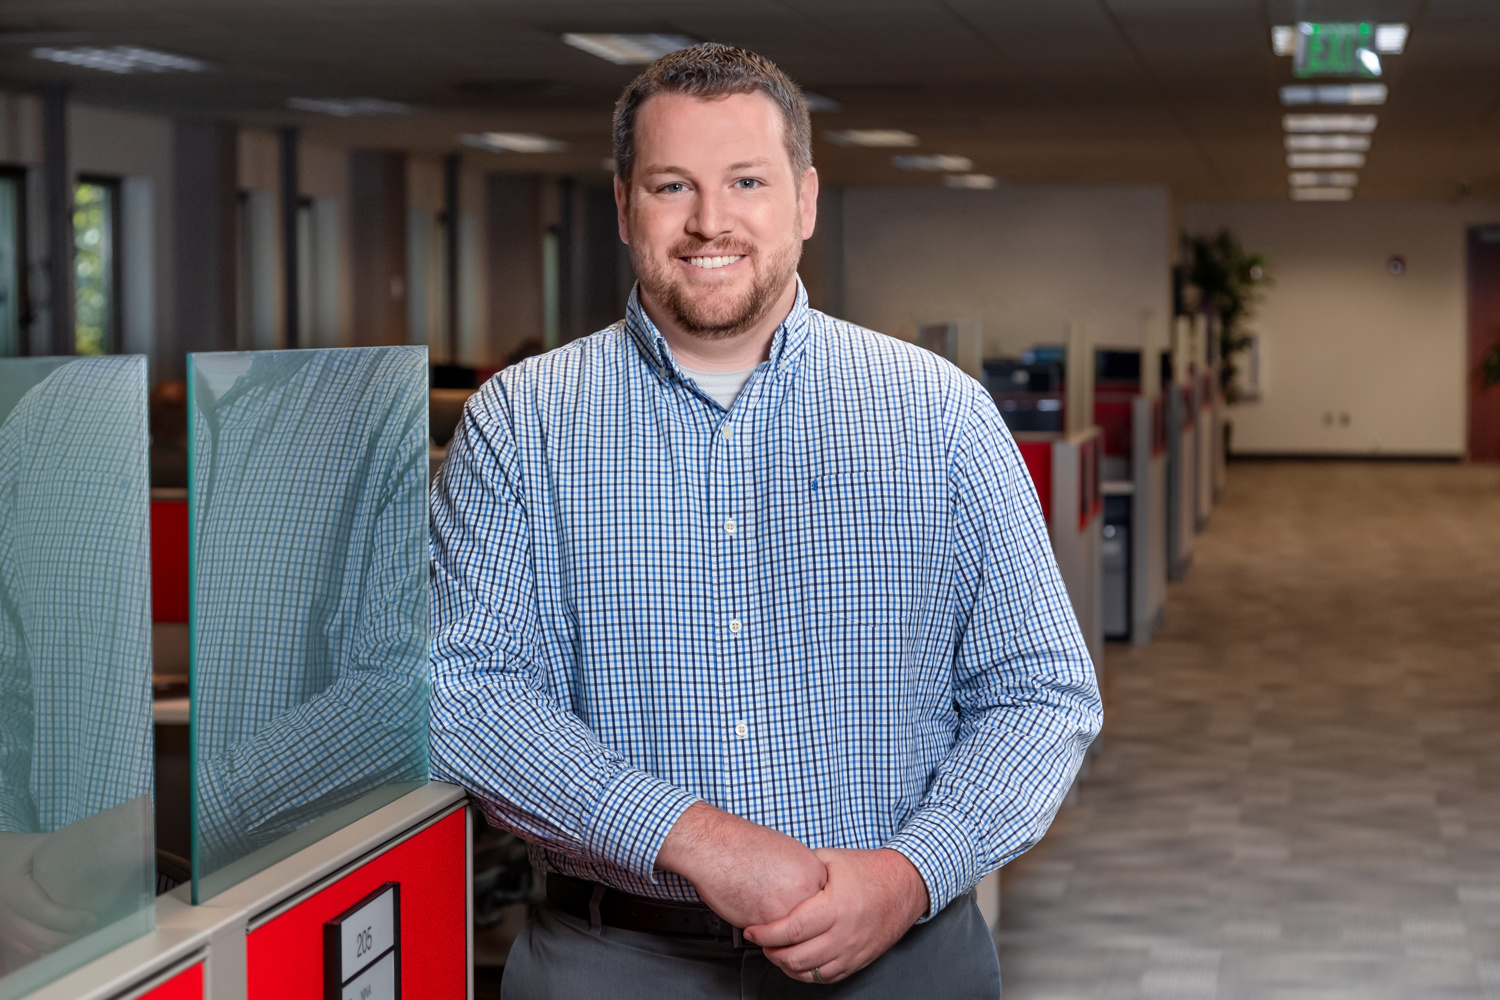 Drew oversees support for several of Railinc's critical industry products.